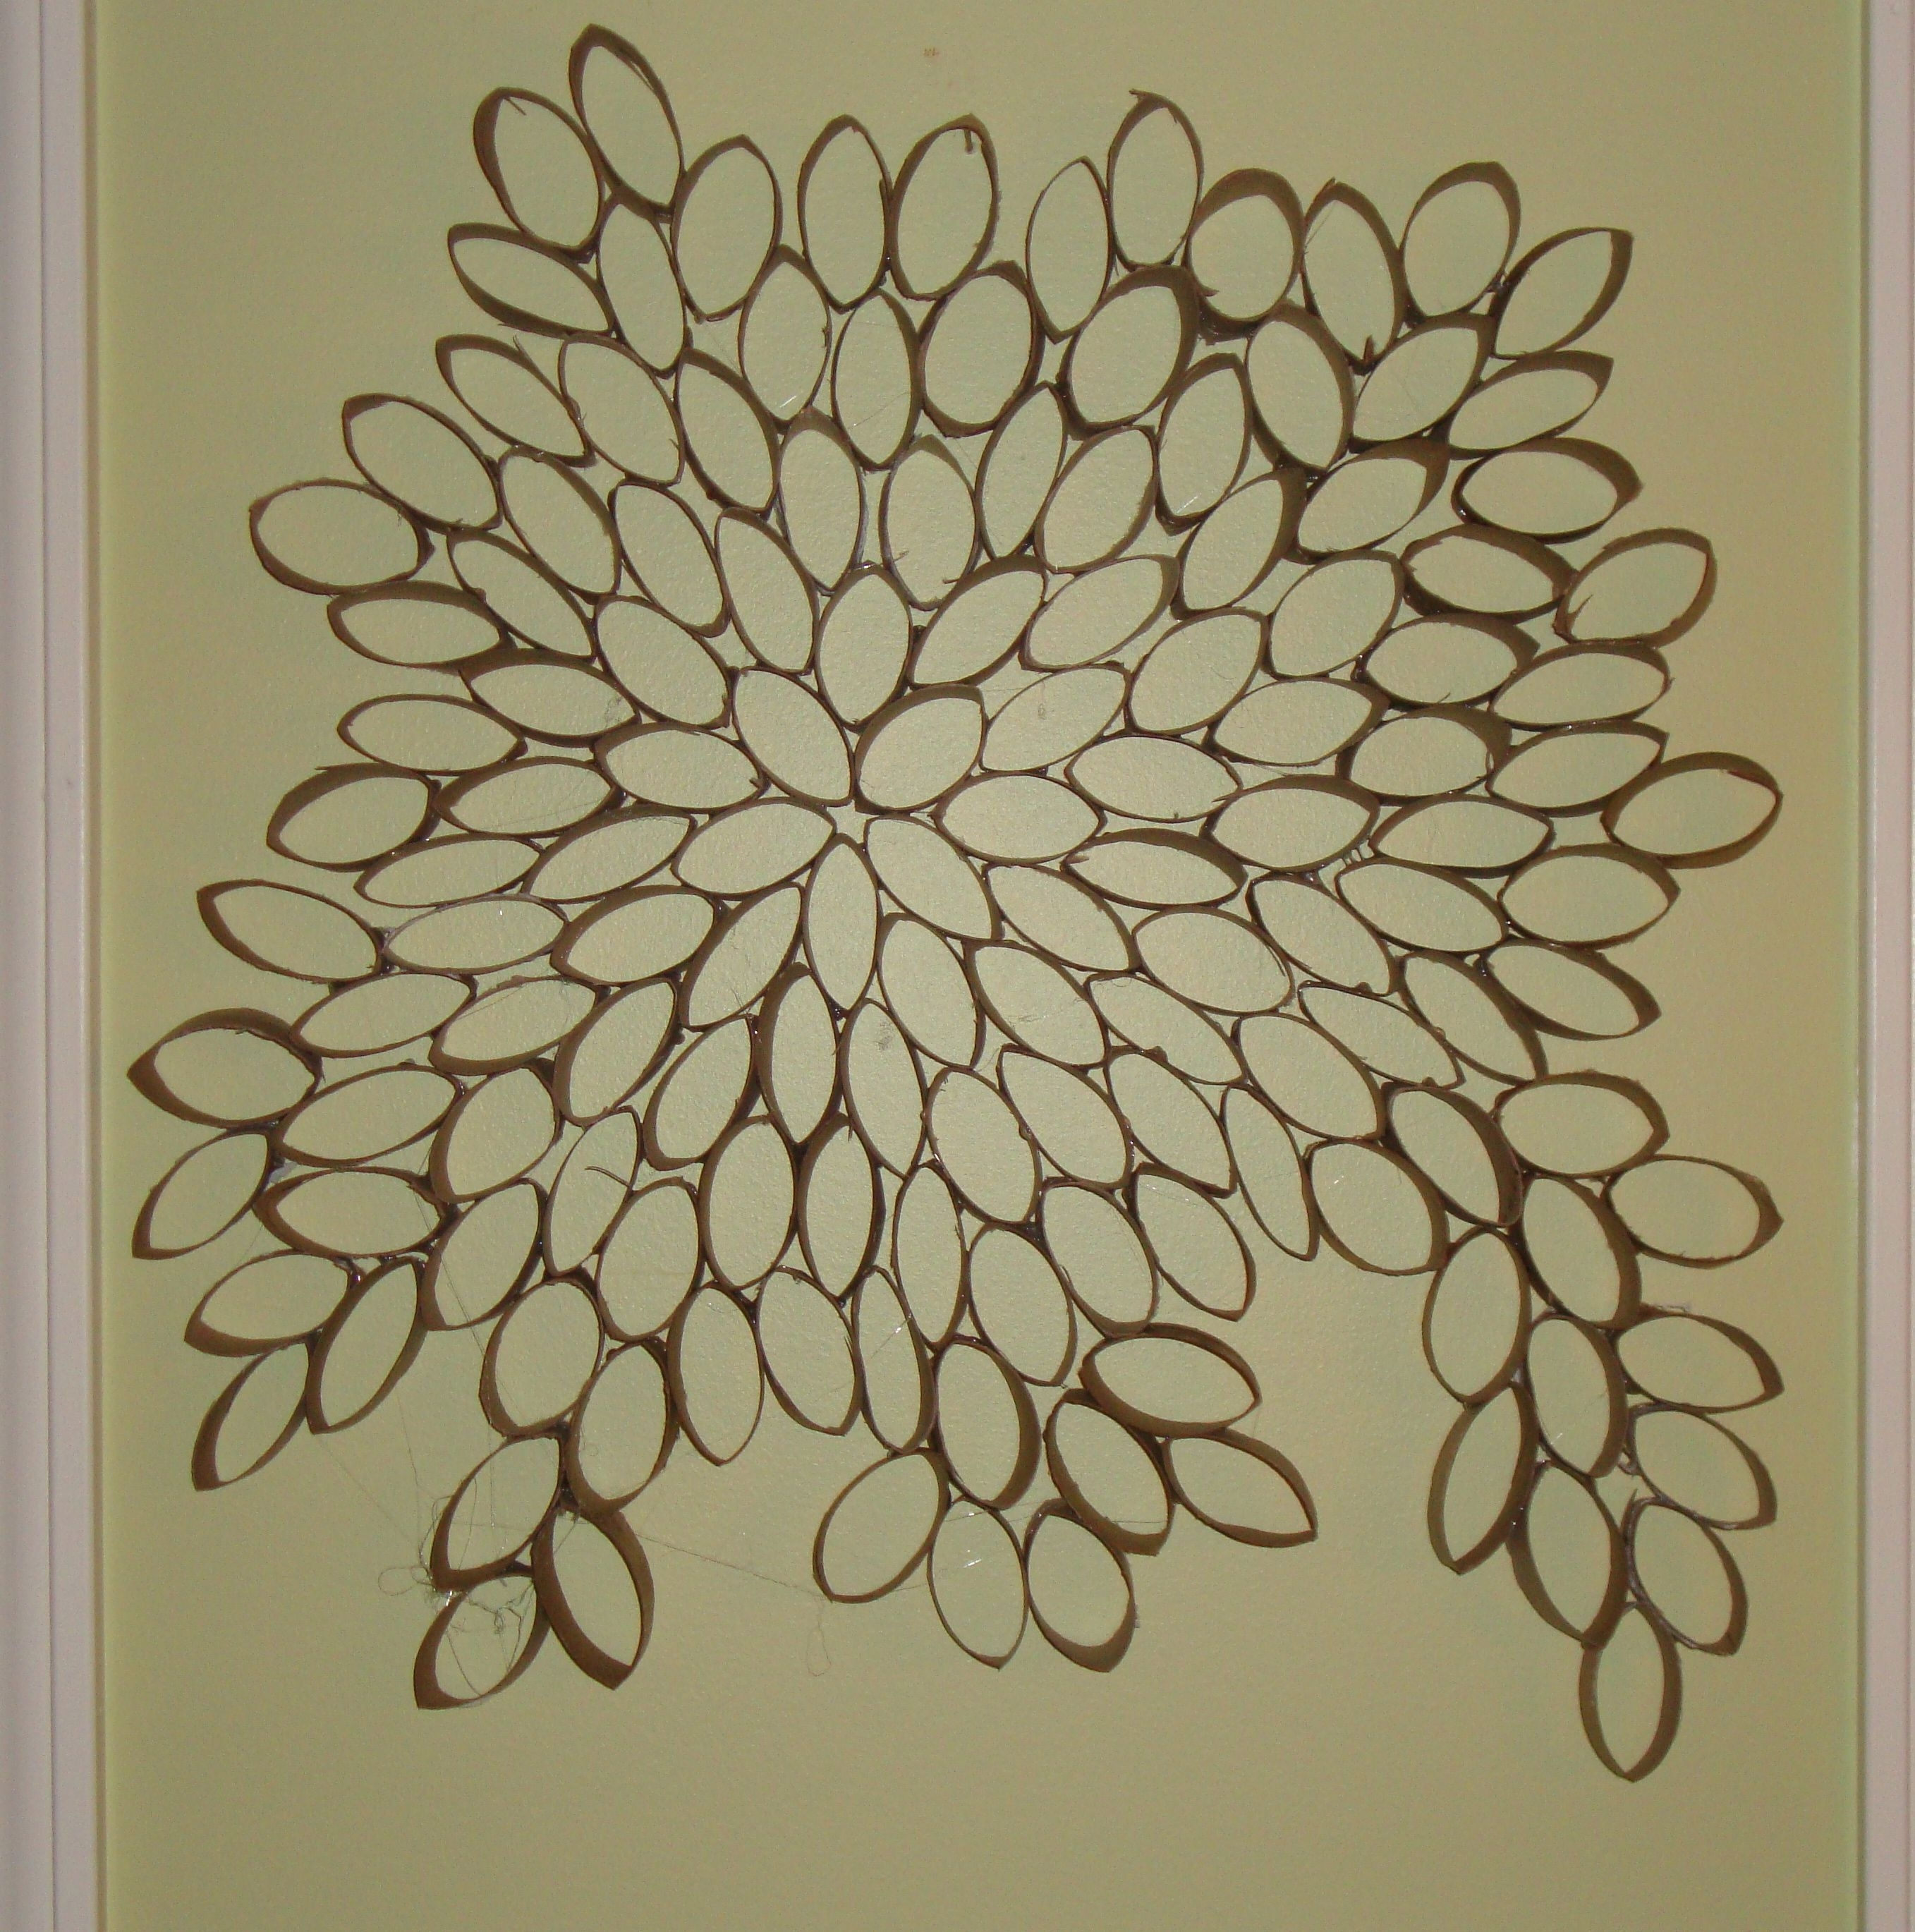 Toilet Paper Roll Art | Nancyalden Pertaining To Most Popular Toilet Paper Roll Wall Art (View 8 of 20)